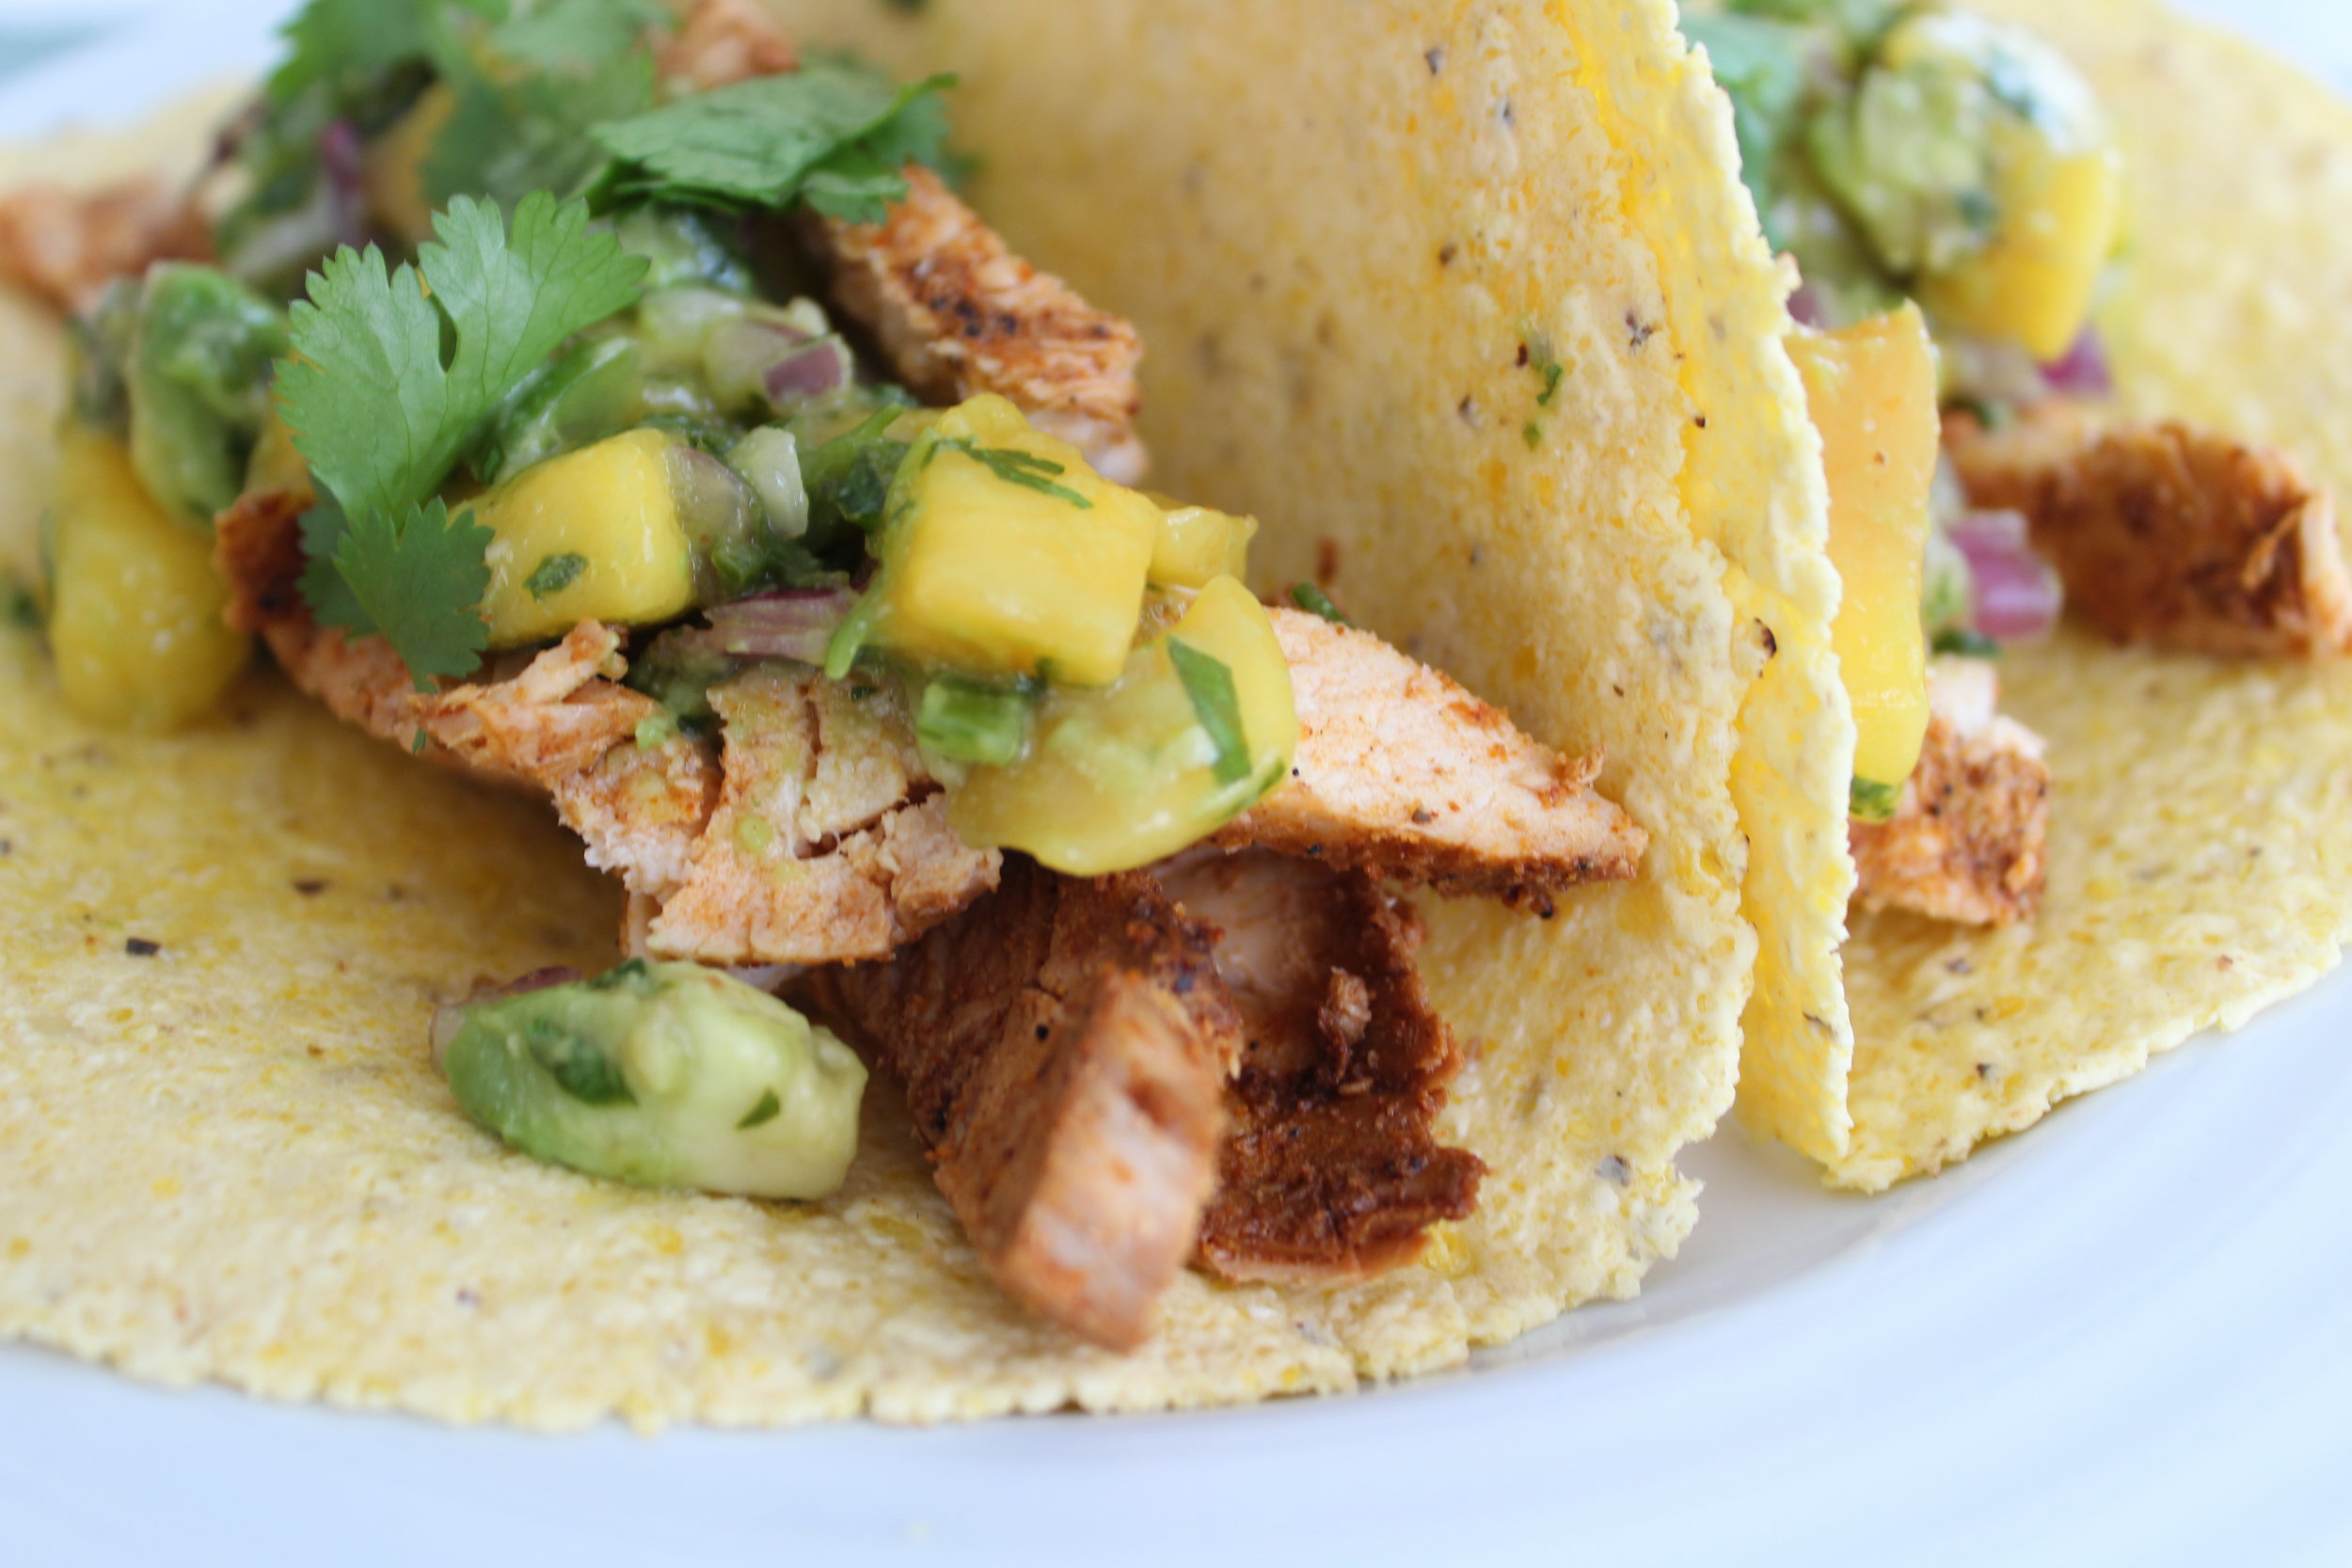 Chili Lime Chicken Tacos with Mango Avocado Salsa